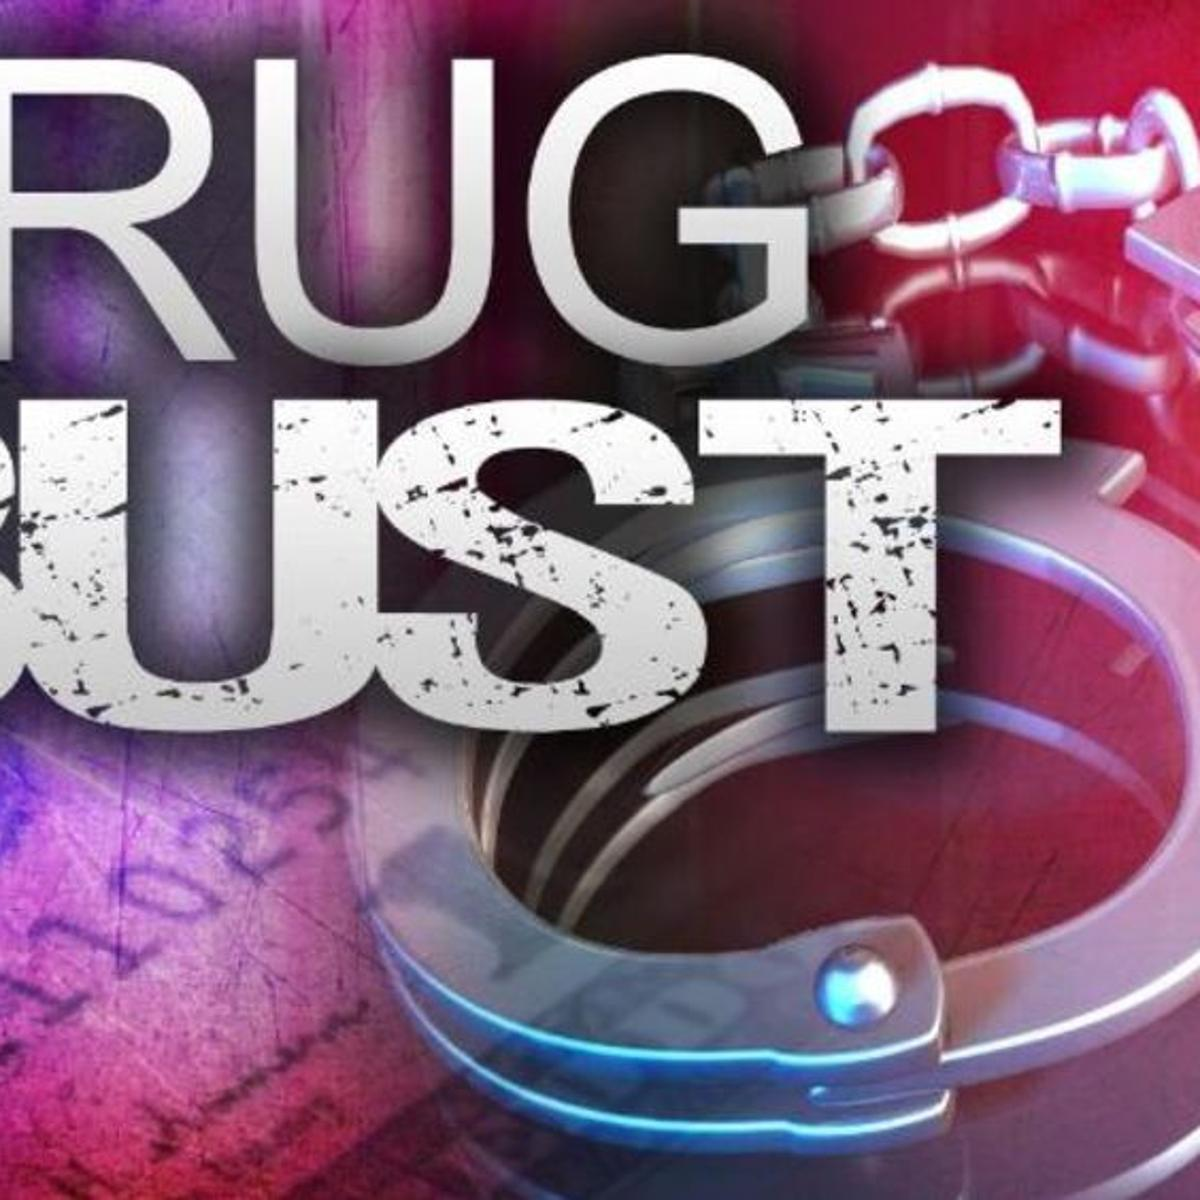 Drug bust leads to multiple arrests in Washington County